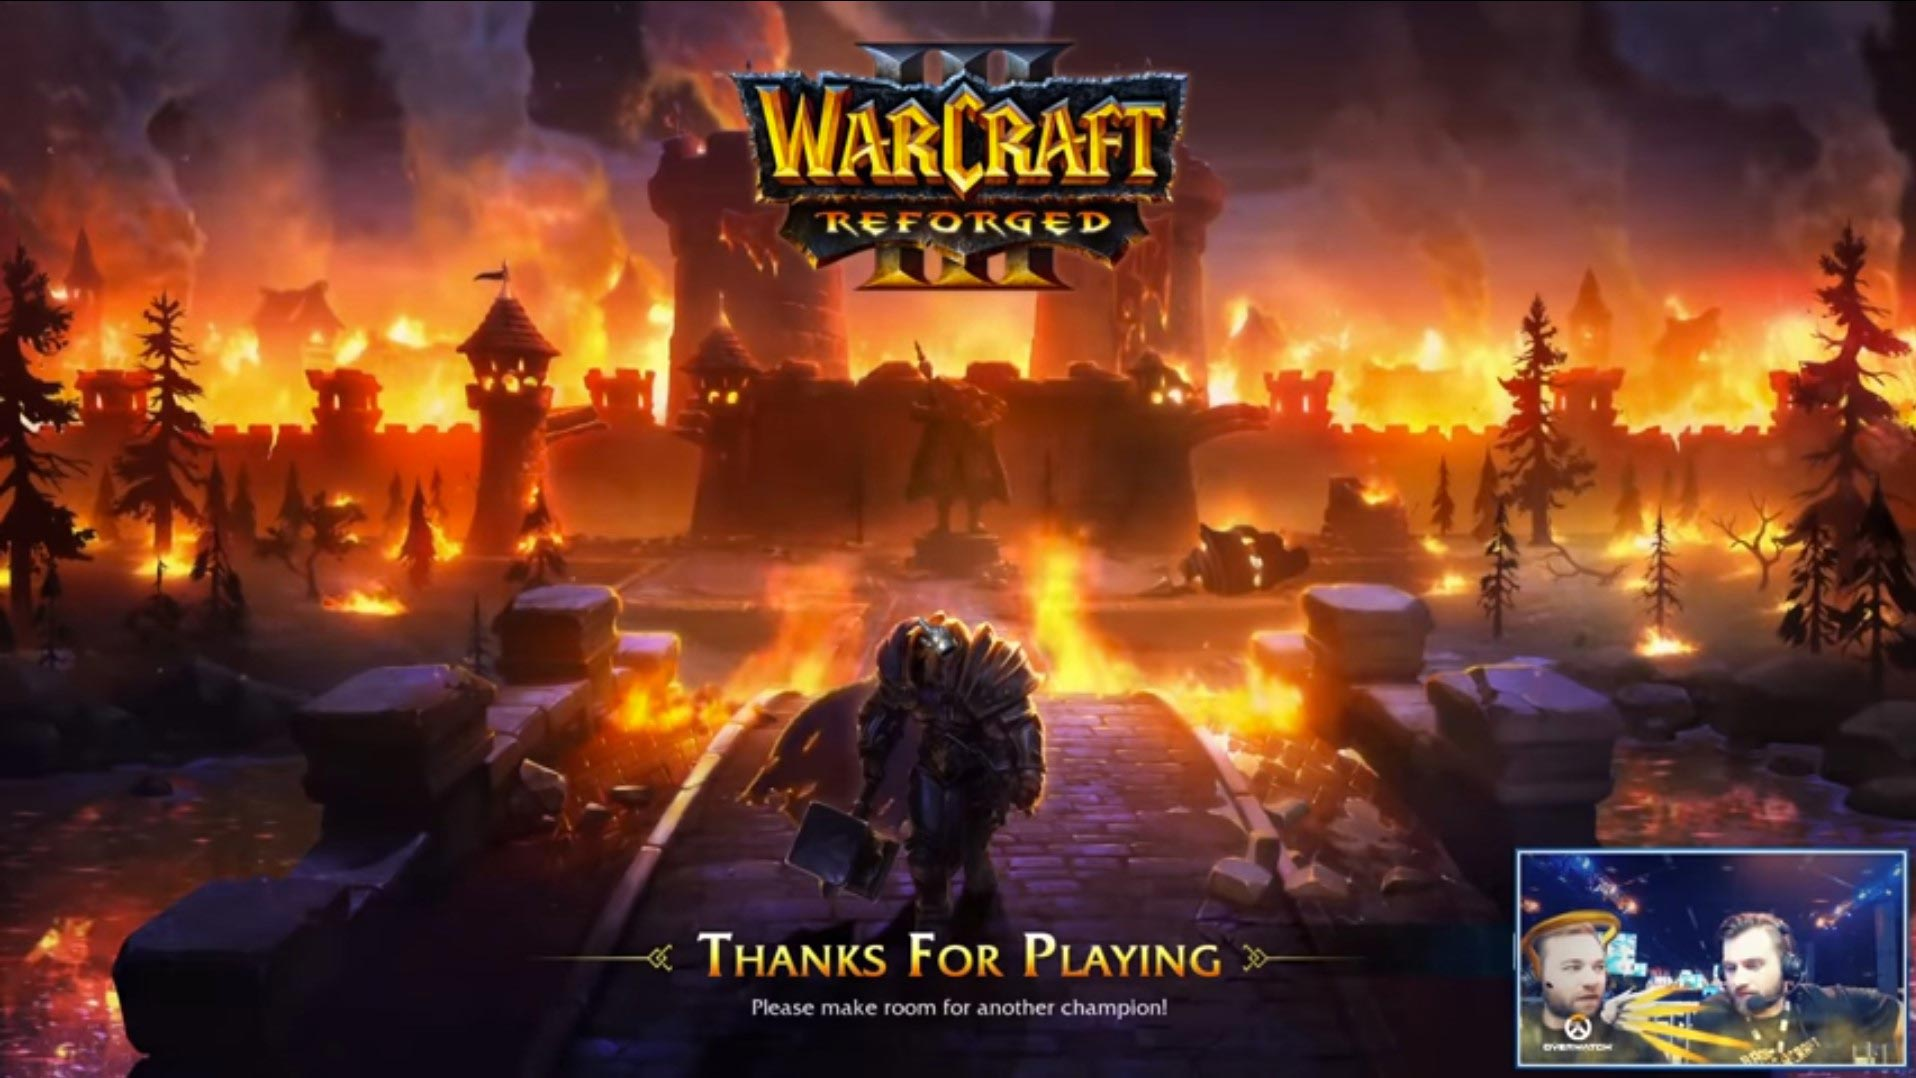 Warcraft 3 Reforged Gameplay New Beta Features and Patch Notes